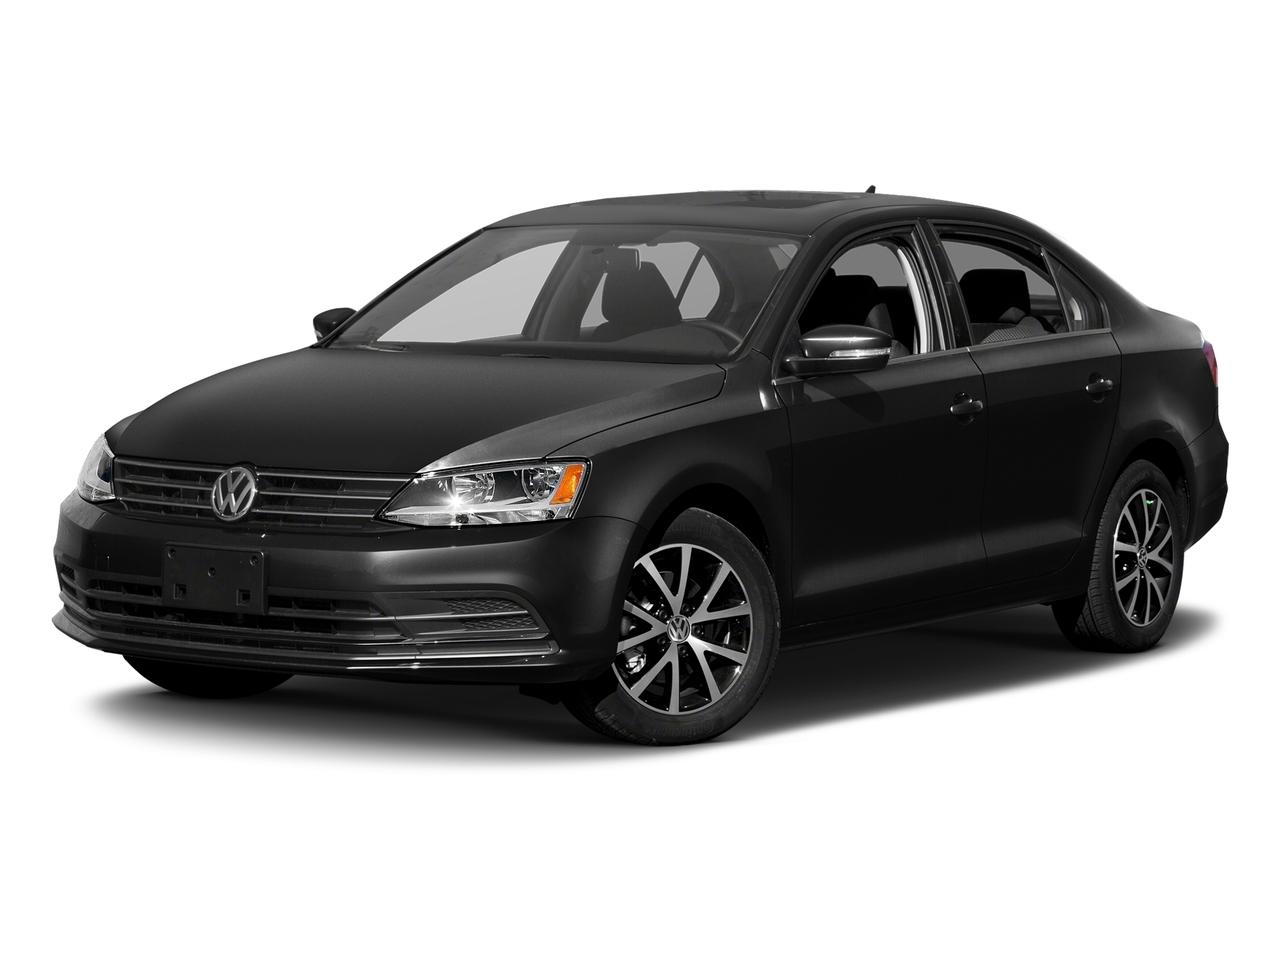 2016 Volkswagen Jetta Sedan Vehicle Photo in Rockville, MD 20852